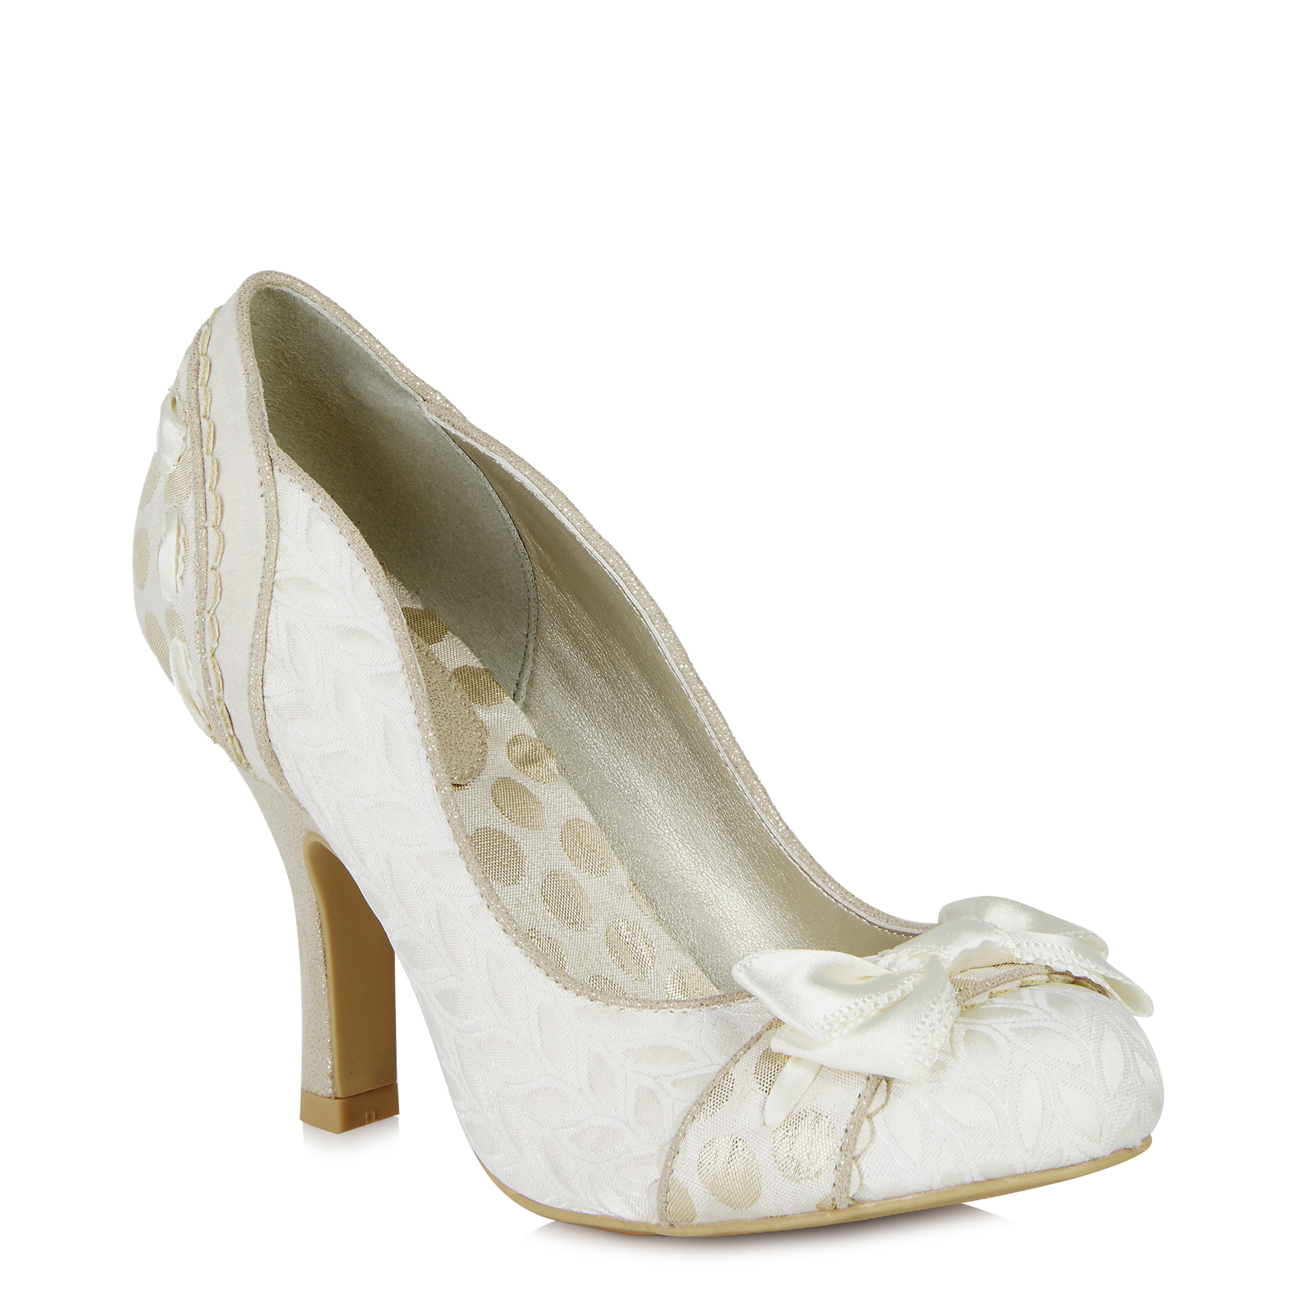 Ruby Shoo Pumps Amy Brocade Court Schuhe Pumps Shoo & Matching Palma Bag Cream Gold Pewter bcf097